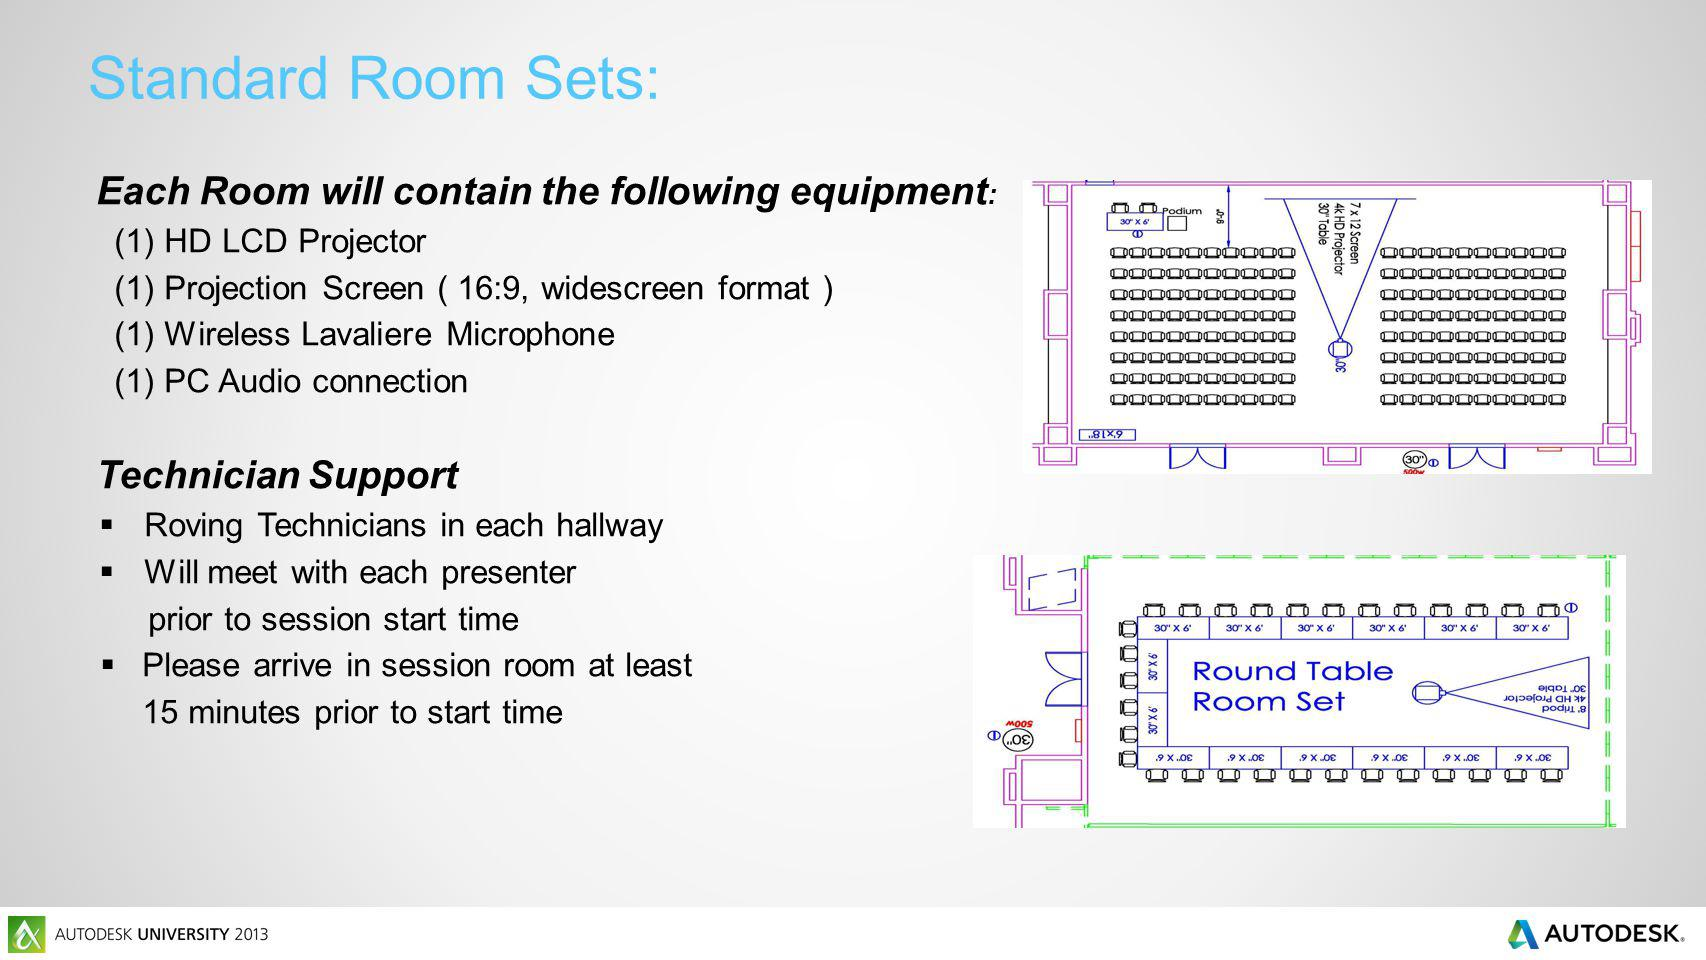 Standard Room Sets: Each Room will contain the following equipment : (1) HD LCD Projector (1) Projection Screen ( 16:9, widescreen format ) (1) Wireless Lavaliere Microphone (1) PC Audio connection Technician Support Roving Technicians in each hallway Will meet with each presenter prior to session start time Please arrive in session room at least 15 minutes prior to start time